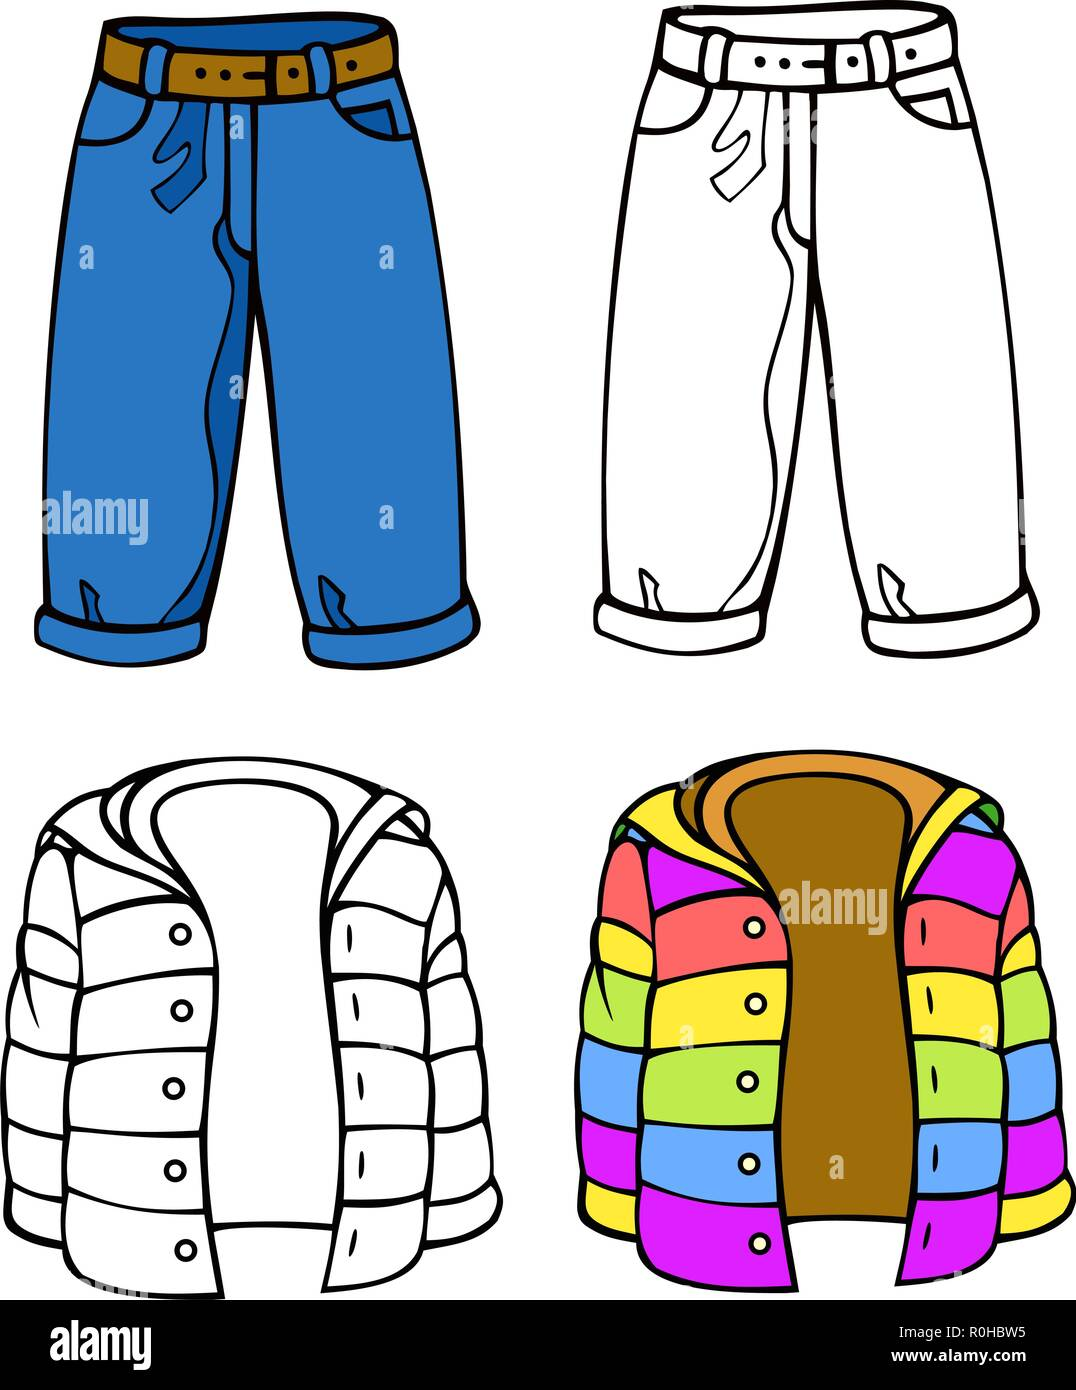 Eighties style teen clothing, cuff jeans and puffy jacket.  comes with bonus black outline versions. - Stock Vector